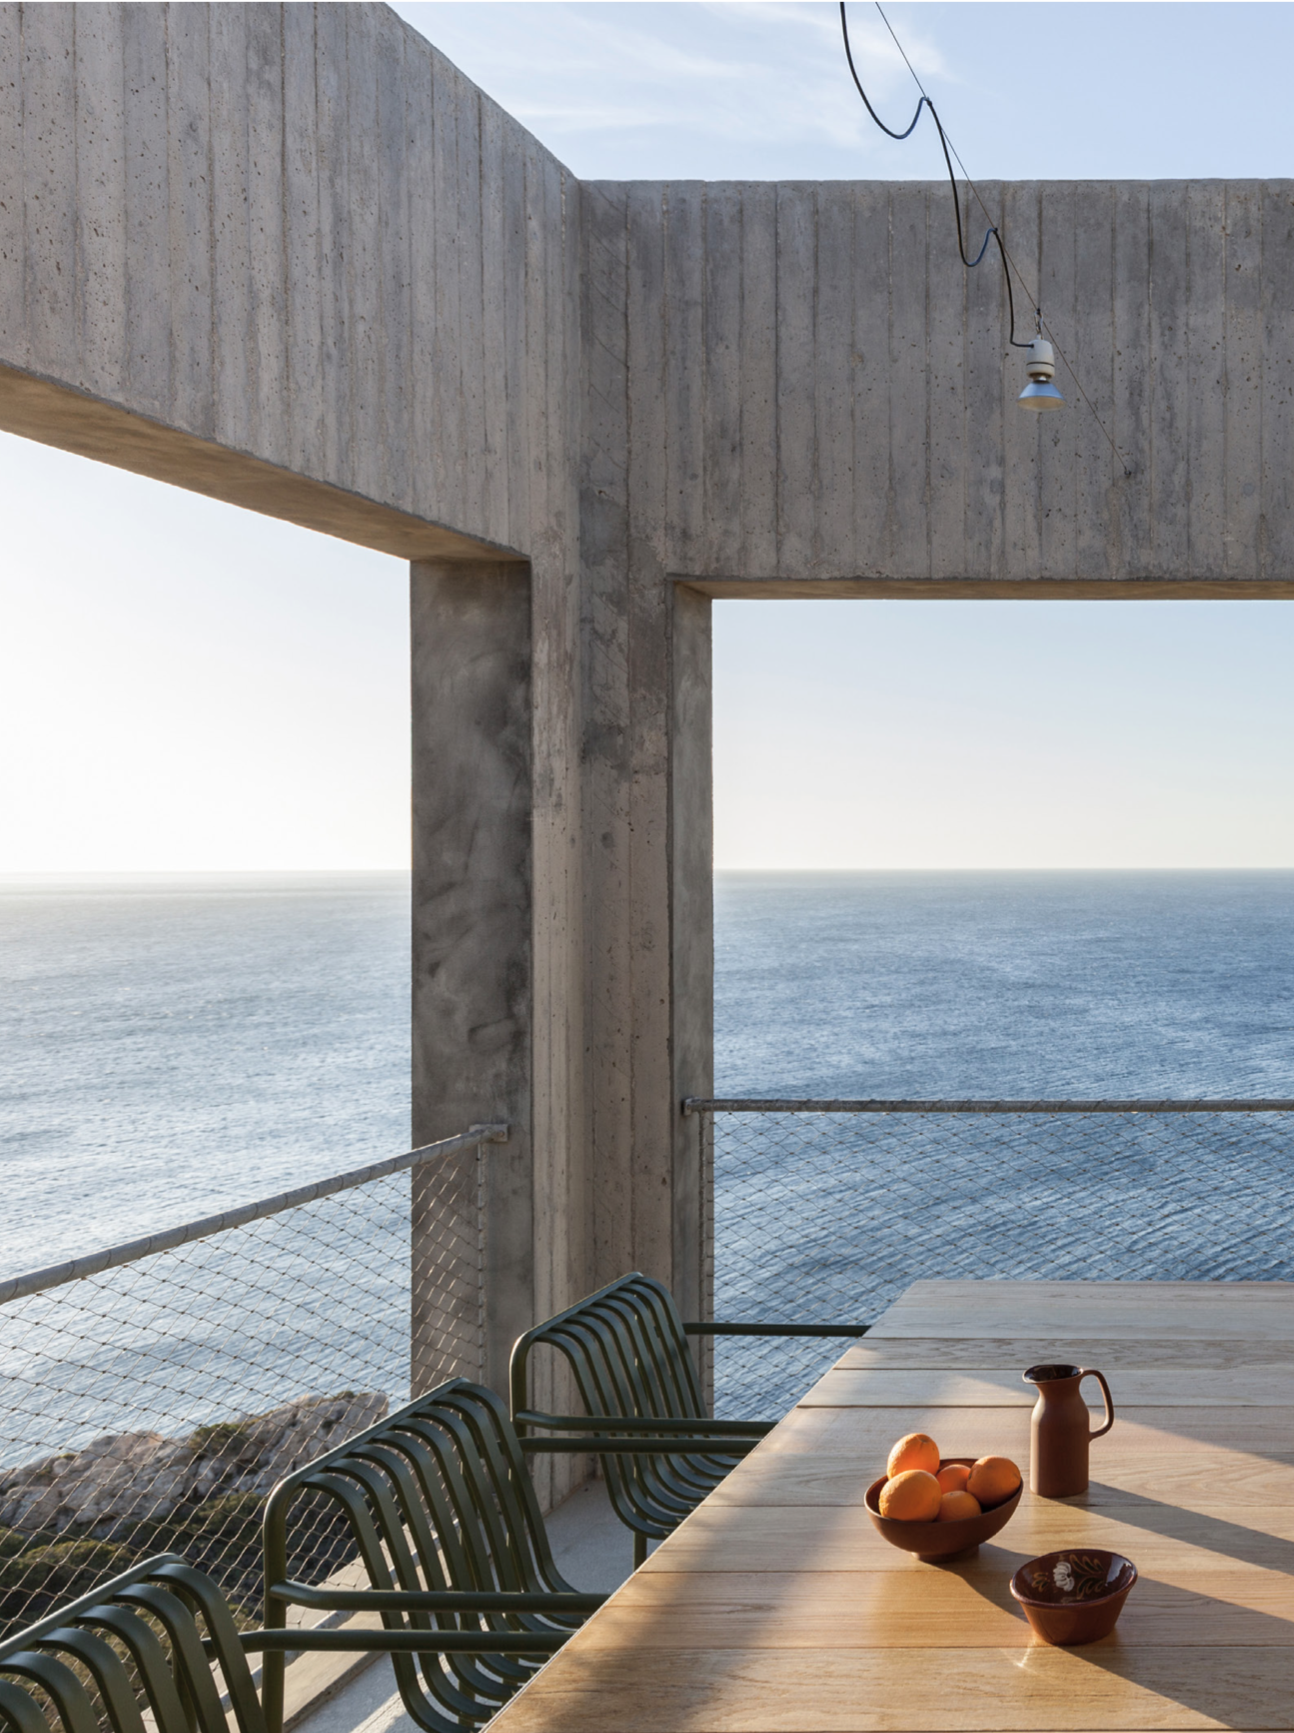 The landscape emerging from the south-eastern Aegean sea in Karpathos, Greece is wild and untamed and yet it's here, among jagged rock and wind-battered brush that a Paris-based couple decided to lay down their roots with Patio House. -